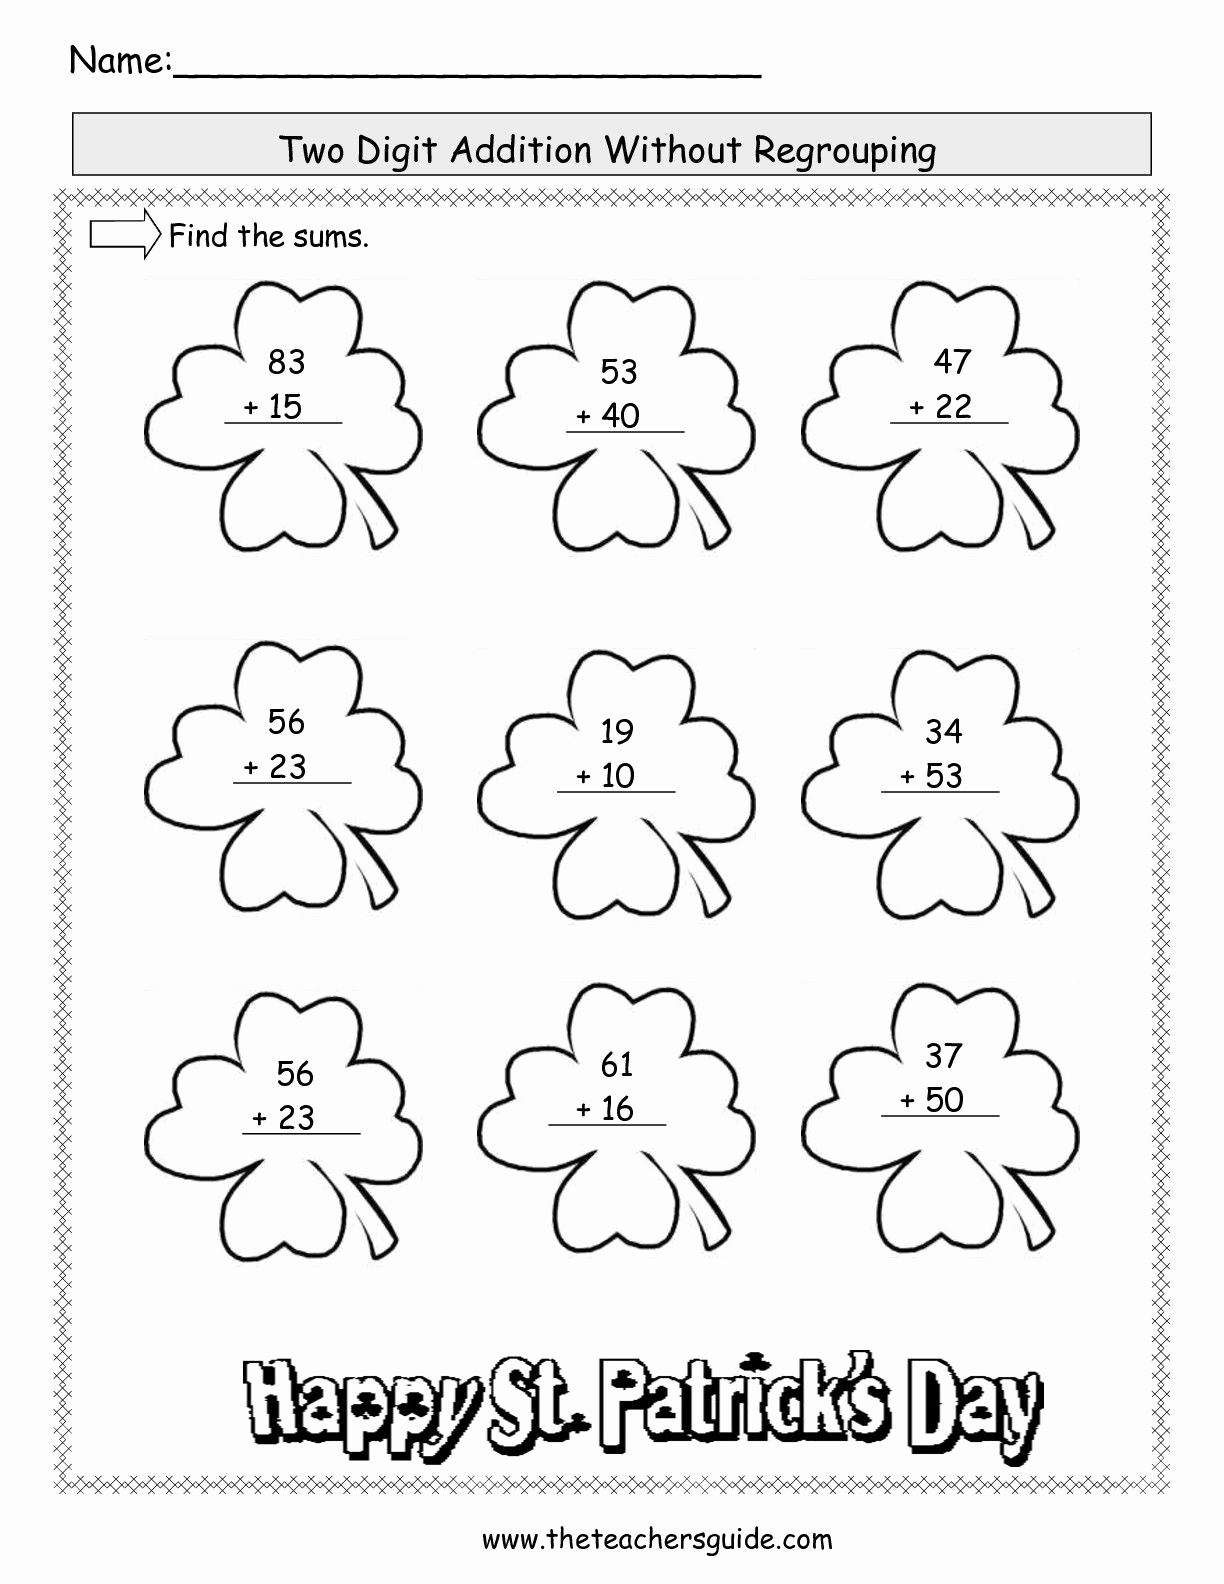 Addition with Regrouping Coloring Worksheets Awesome 2 Digit Addition with some Regrouping Google Search